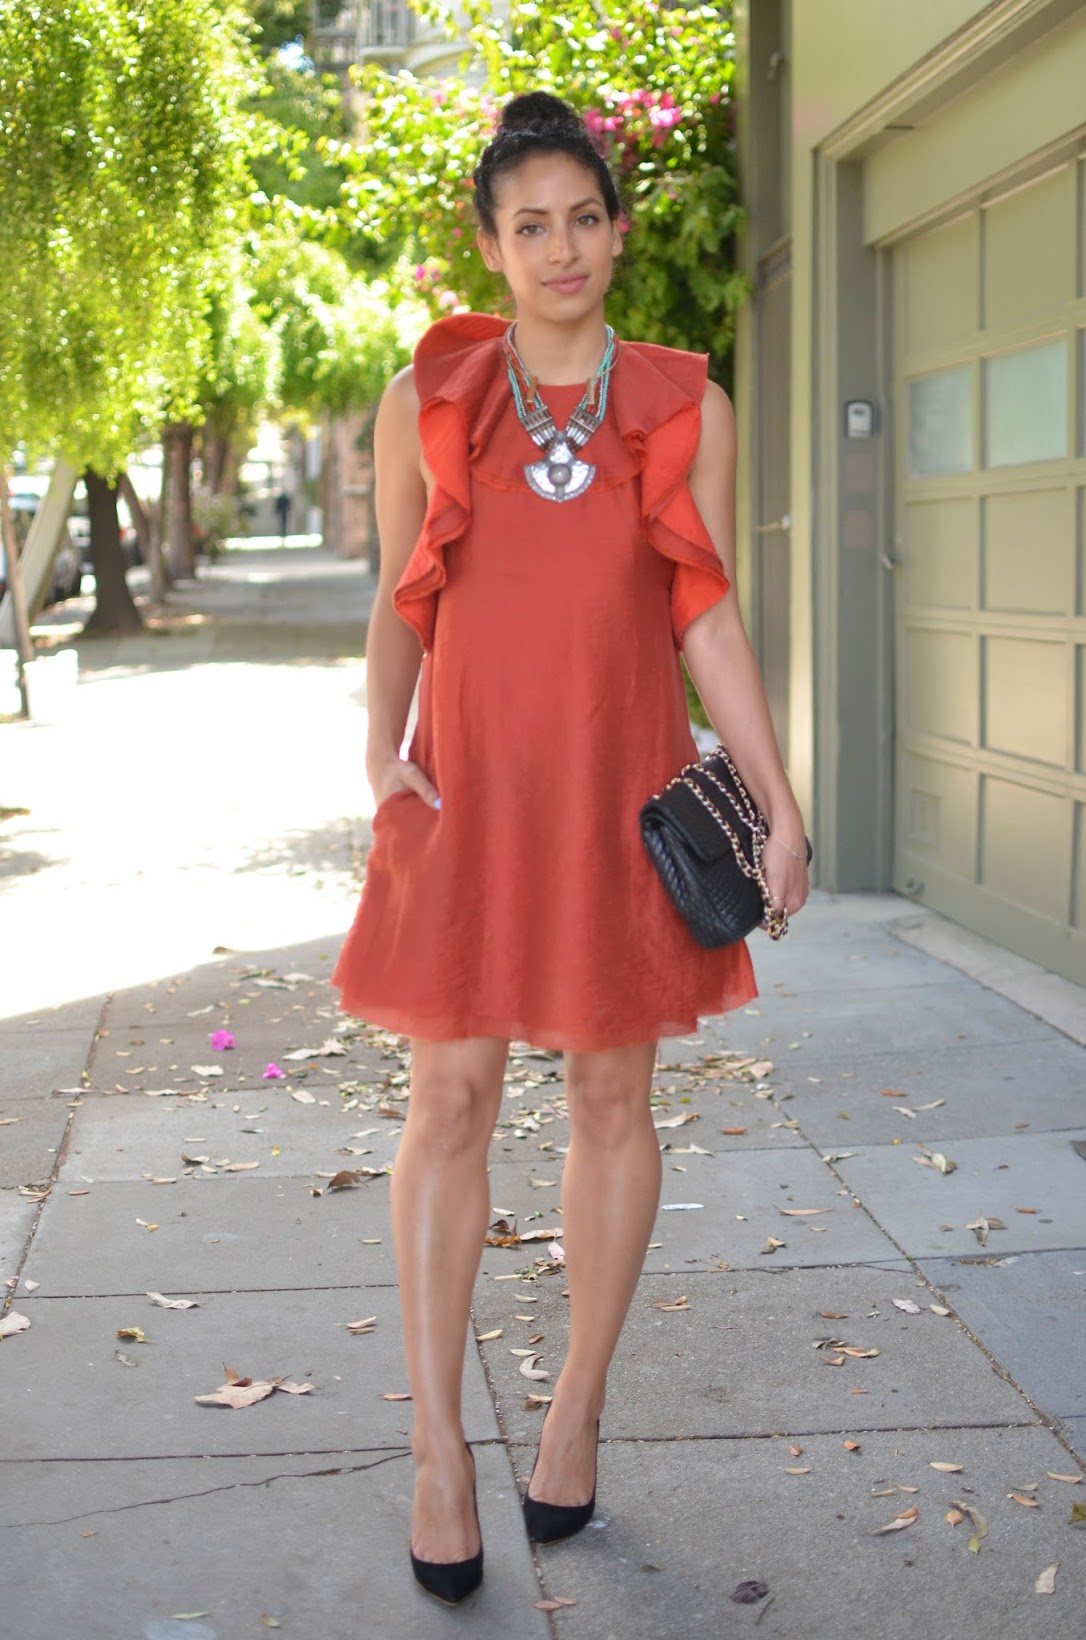 ruffle dress, orange ruffle H&M dress, conscious collection, H&M conscious collection ruffle dress, transitional dressing, autumn hues, H&M, Sophia Webster Coco Flamingo heels, Bally Chain bag